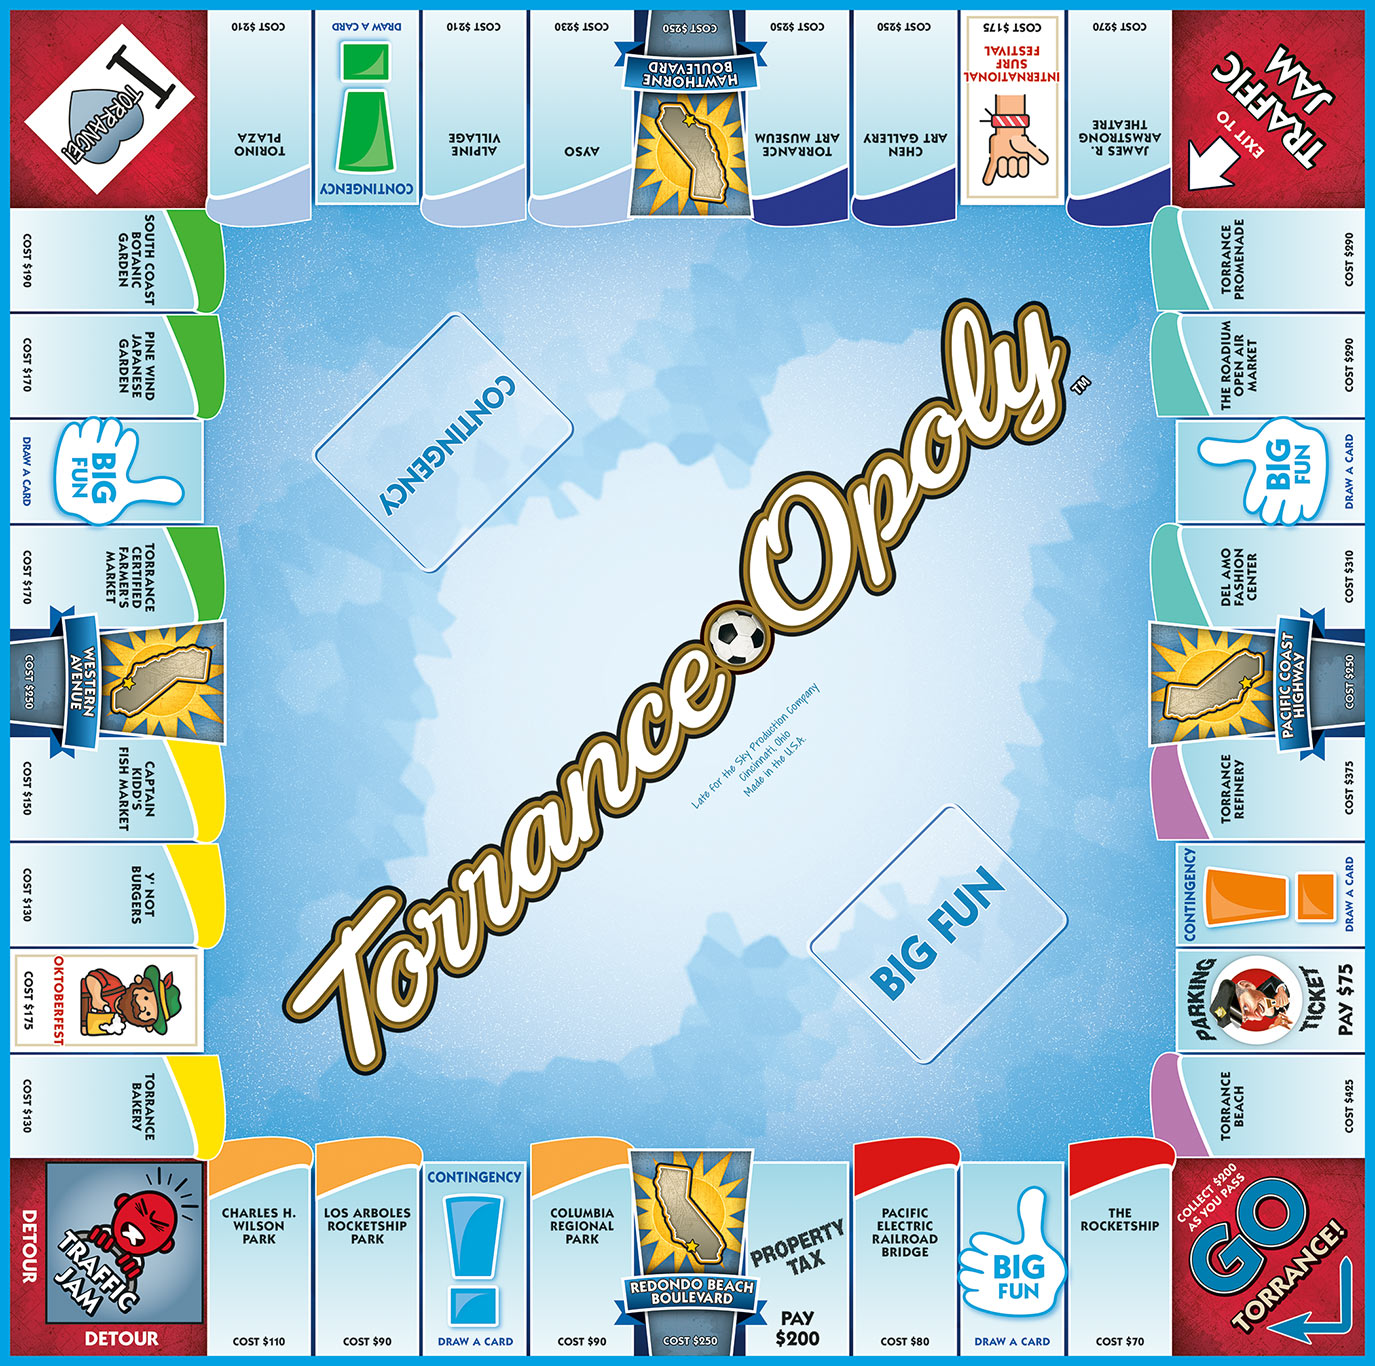 TORRANCE-OPOLY Board Game